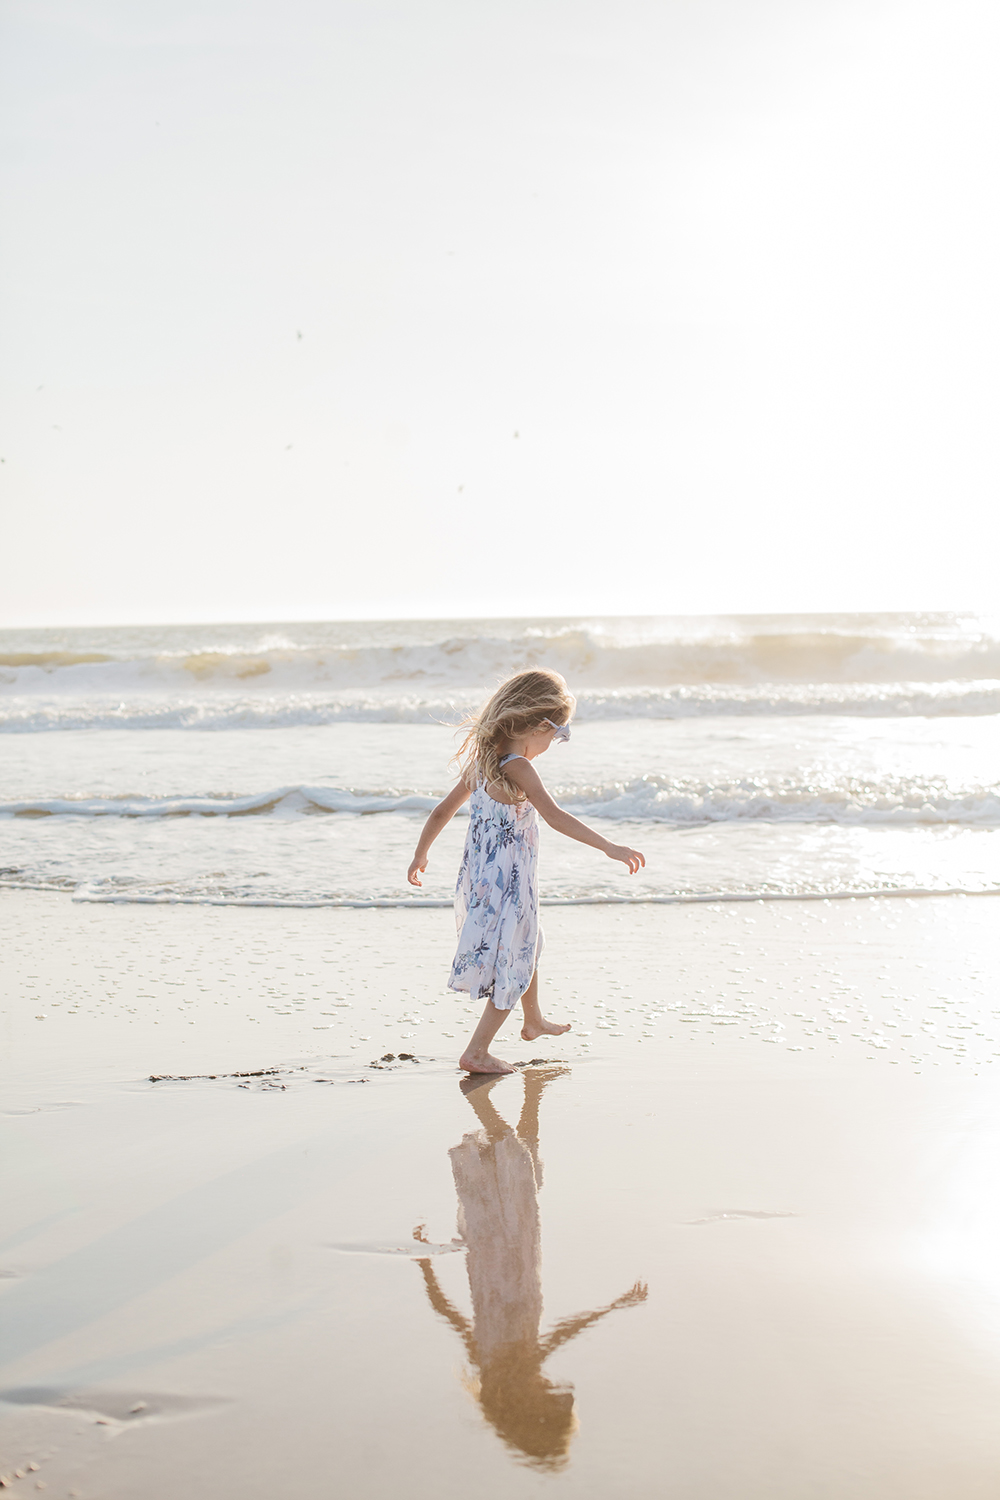 half-moon-bay-beach-family-photos-17.html